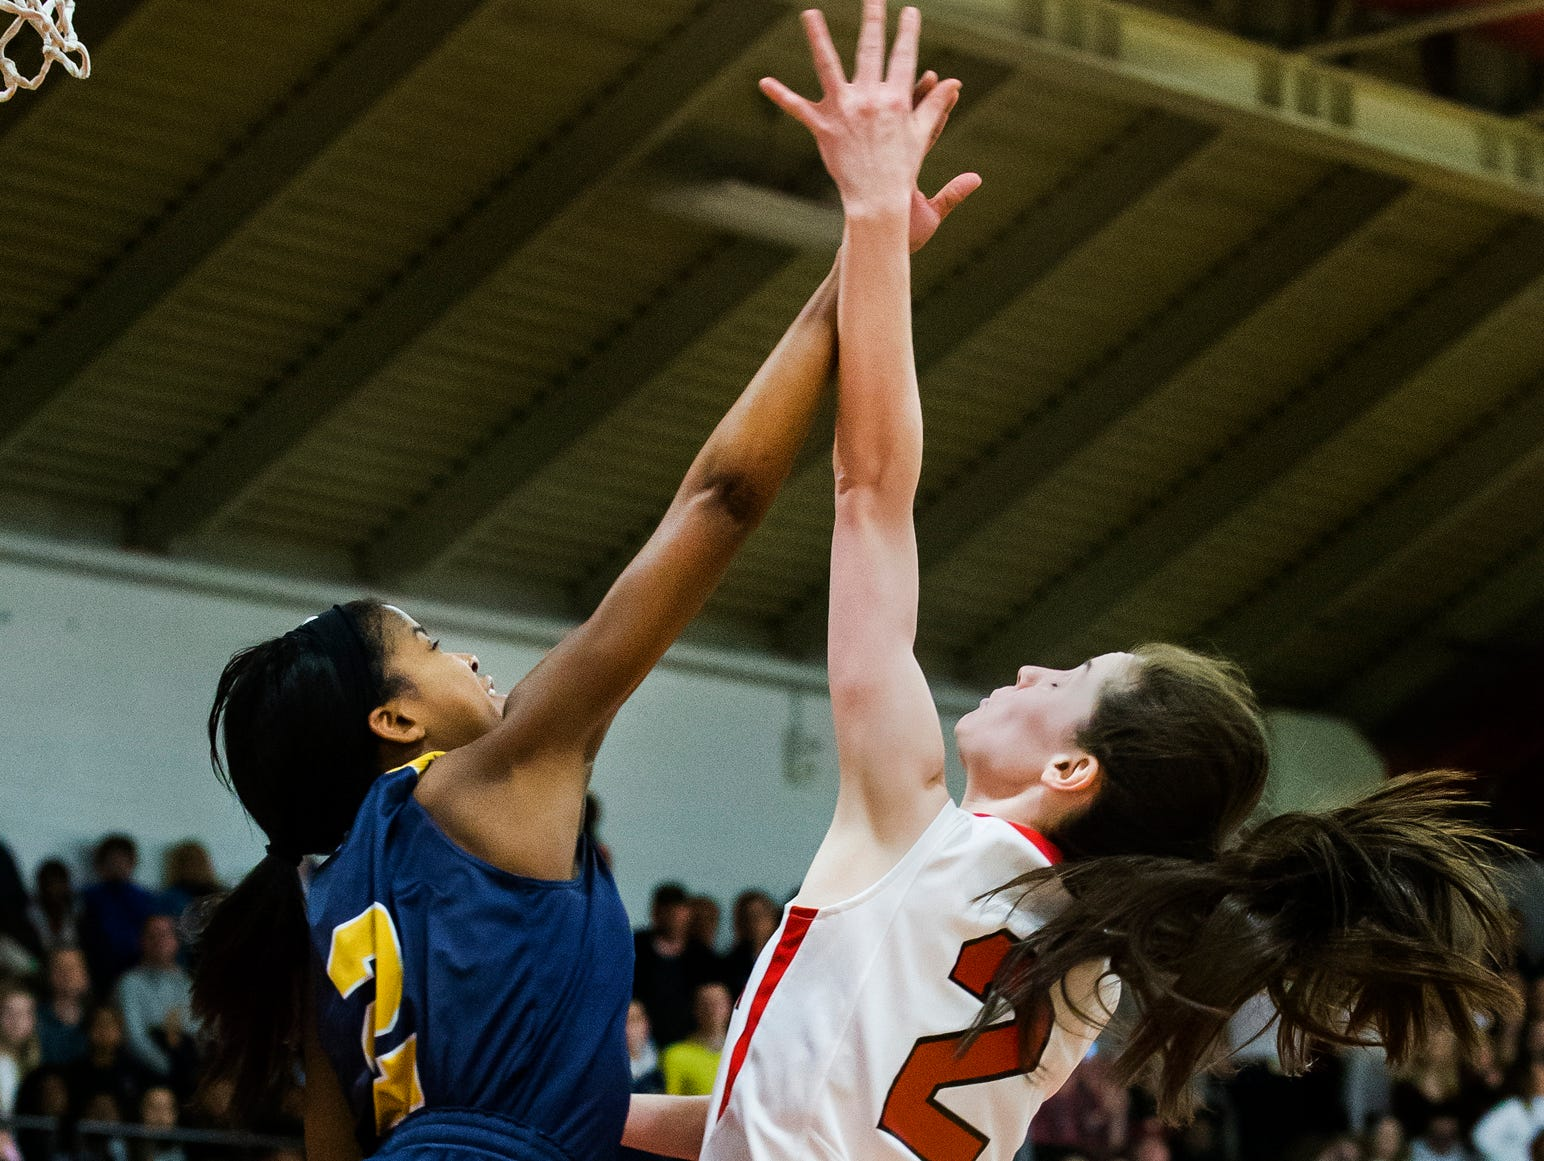 Ursuline's Maggie Connolly (right) is fouled as she puts up a shot over Sanford's Lauren Park (left) in the second half of Ursuline's 50-40 win over Sanford at Ursuline Academy on Thursday night.